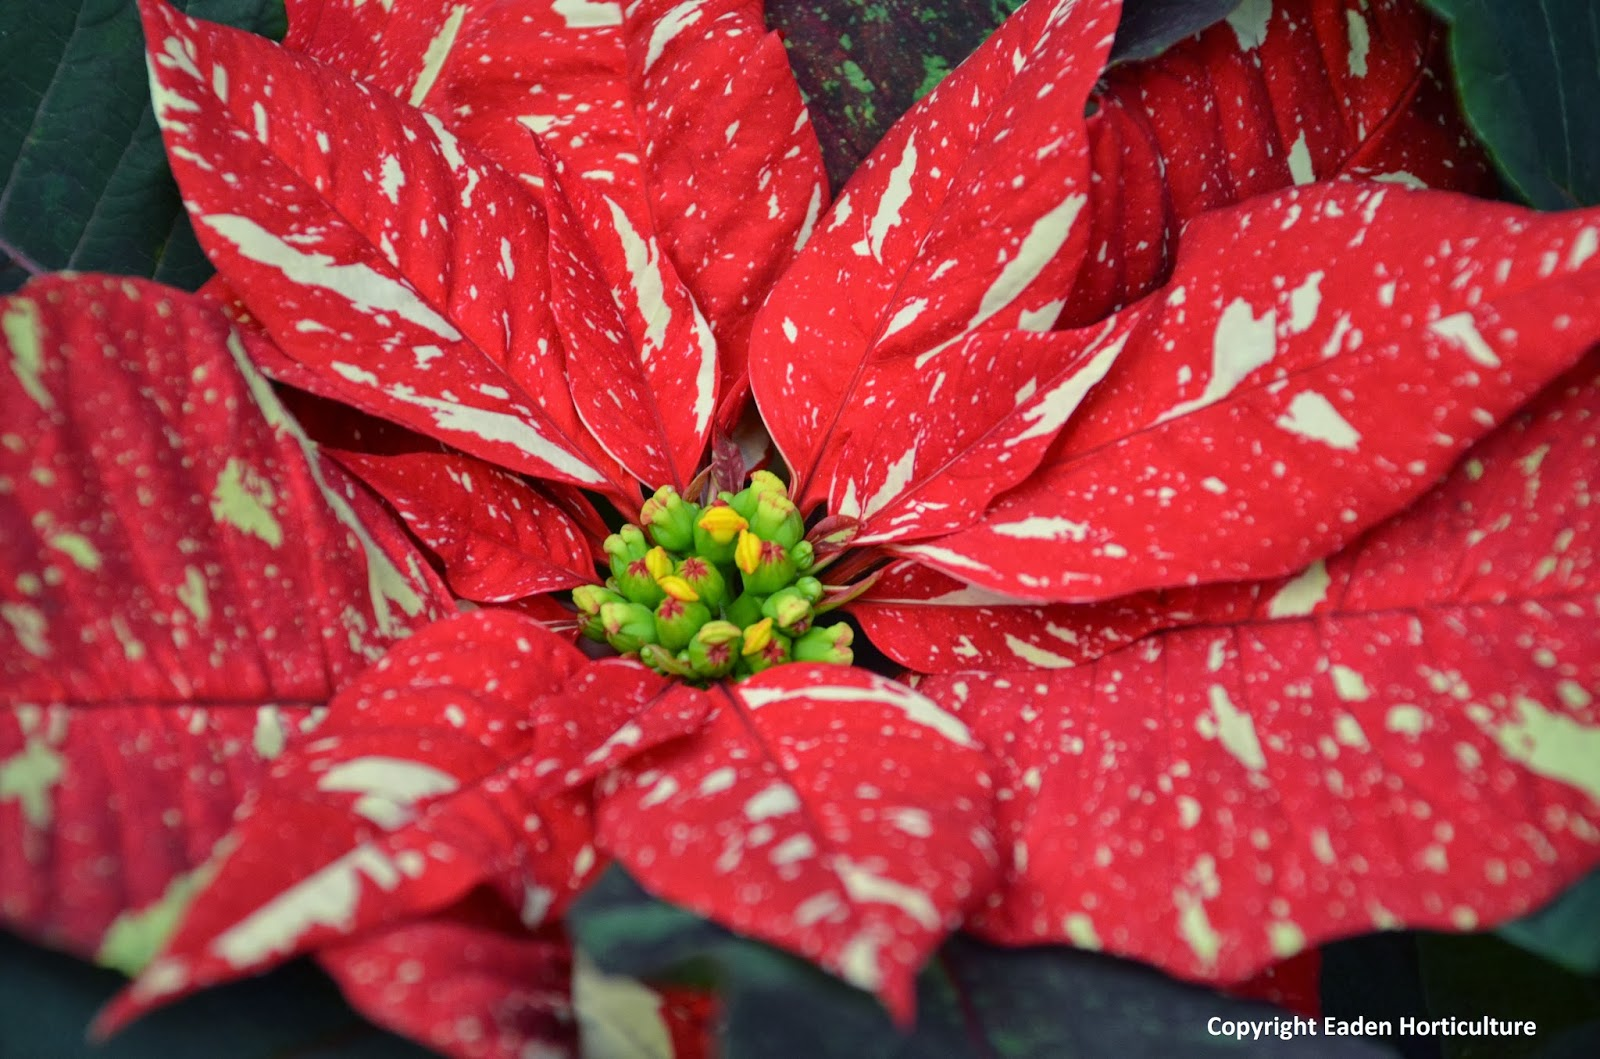 How to take cuttings from poinsettias